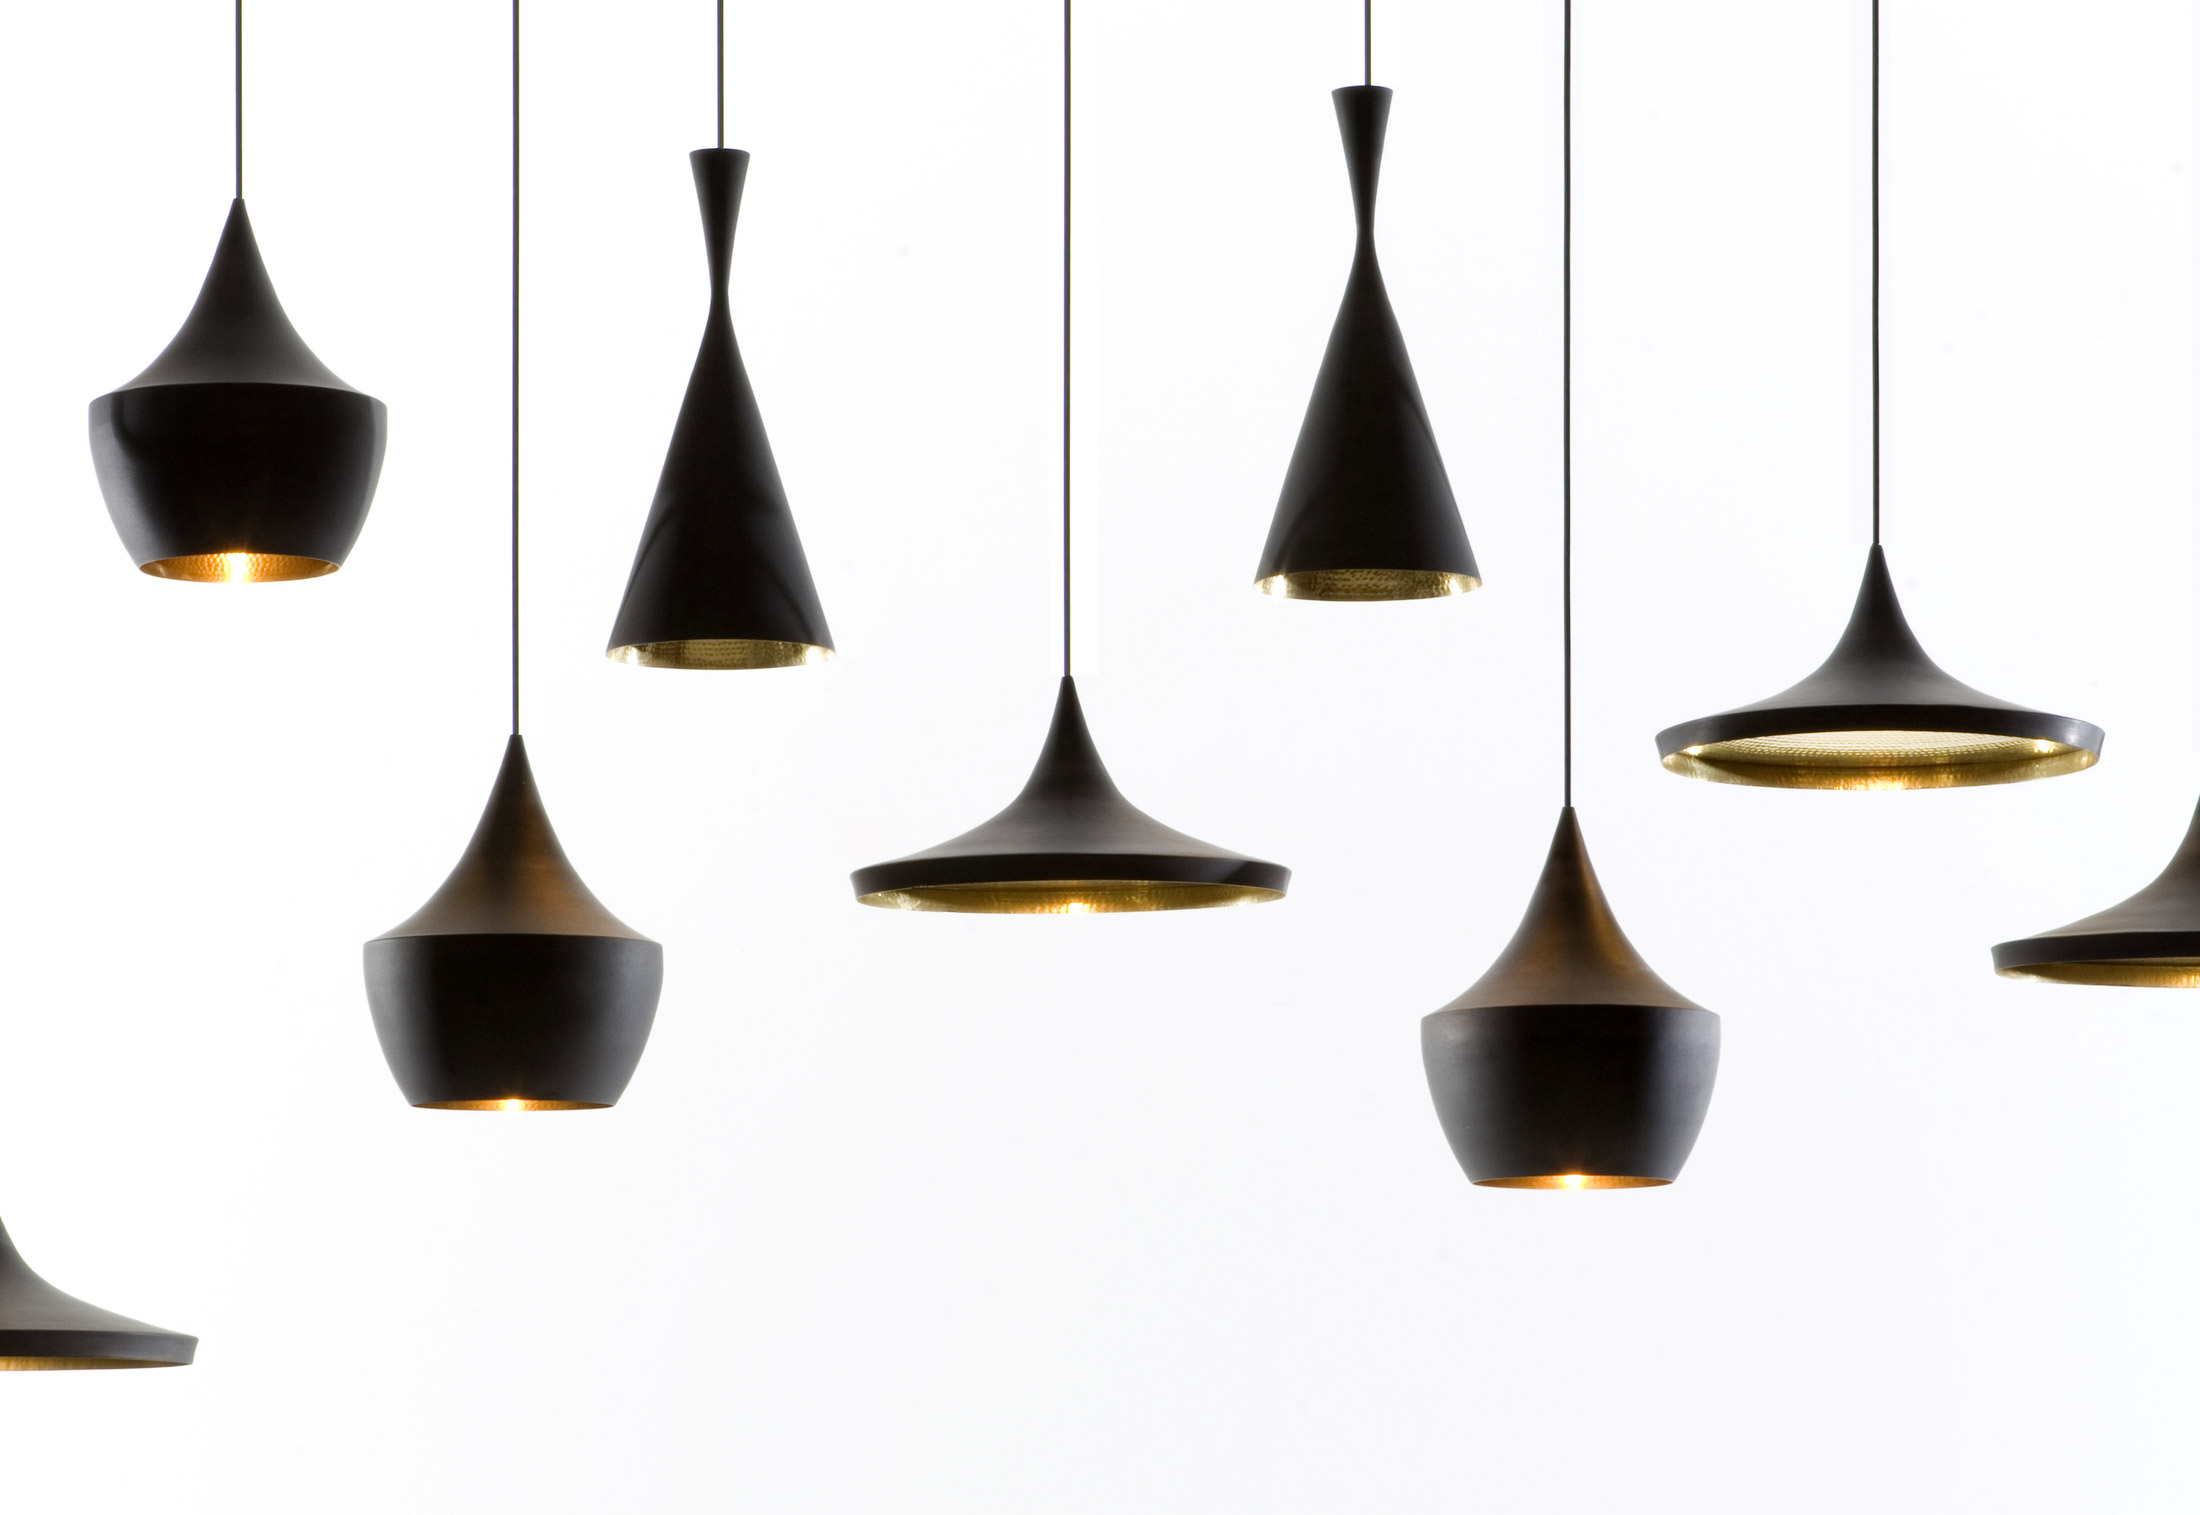 Tom dixon the most important designer of modernity idaaf for Designer lighting